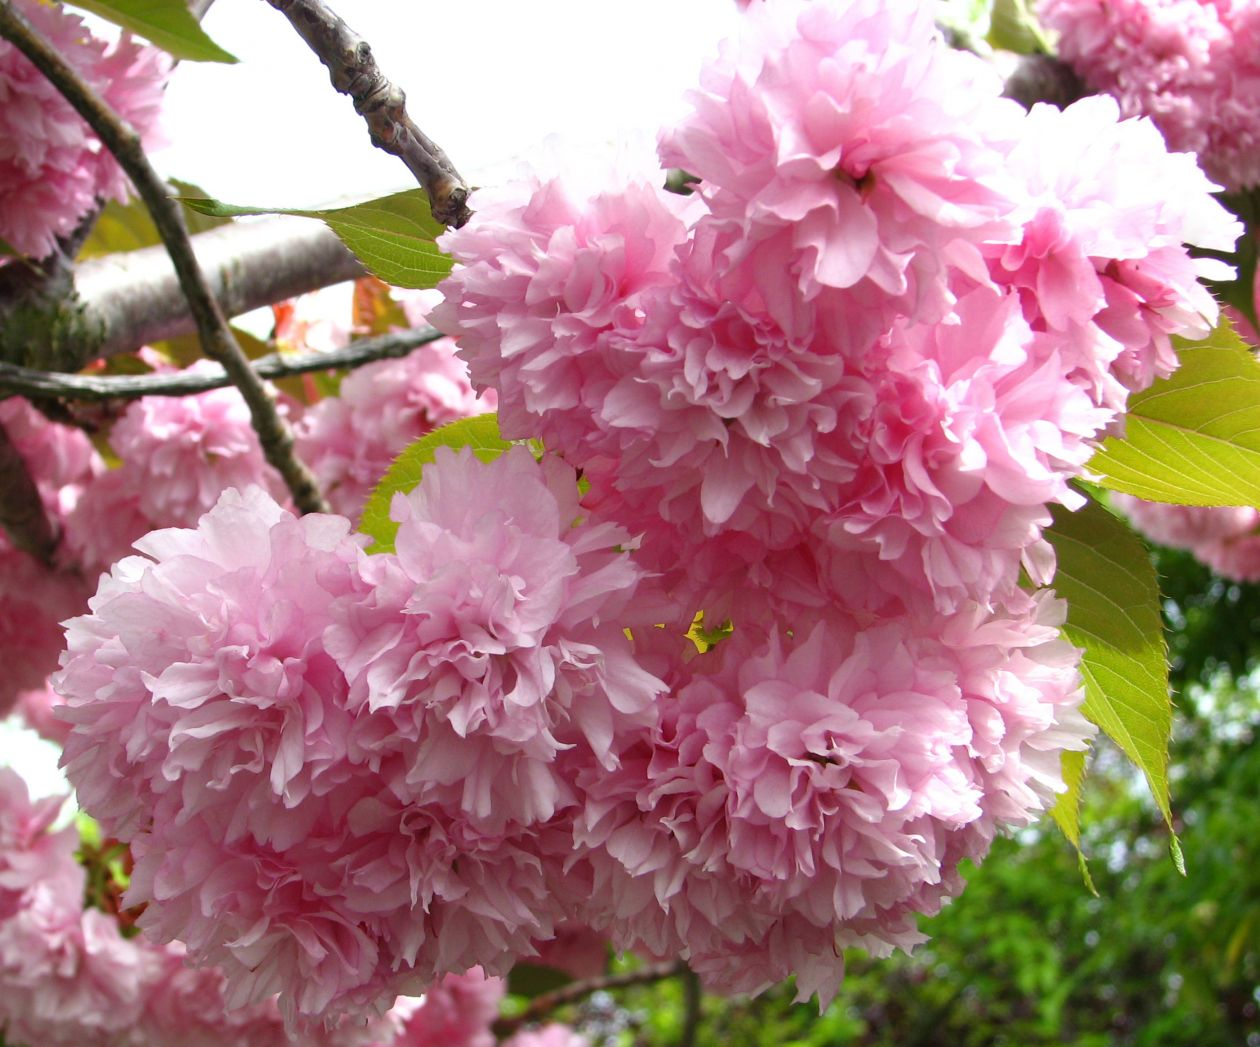 """Free photo """"Fluffy pink fruit-tree blossoms"""""""